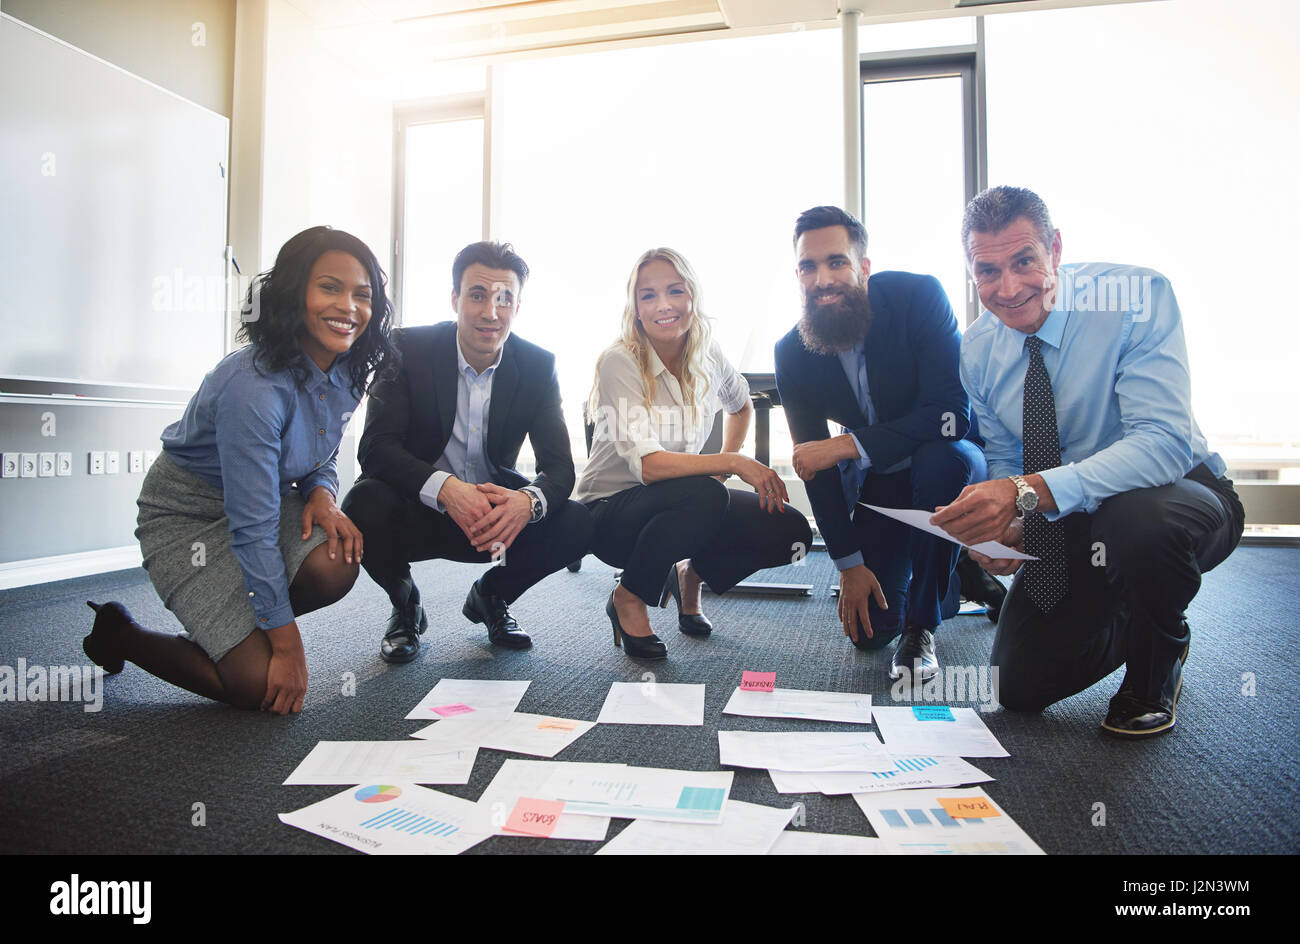 Smiling business team with ideas spread out on office floor Stock Photo